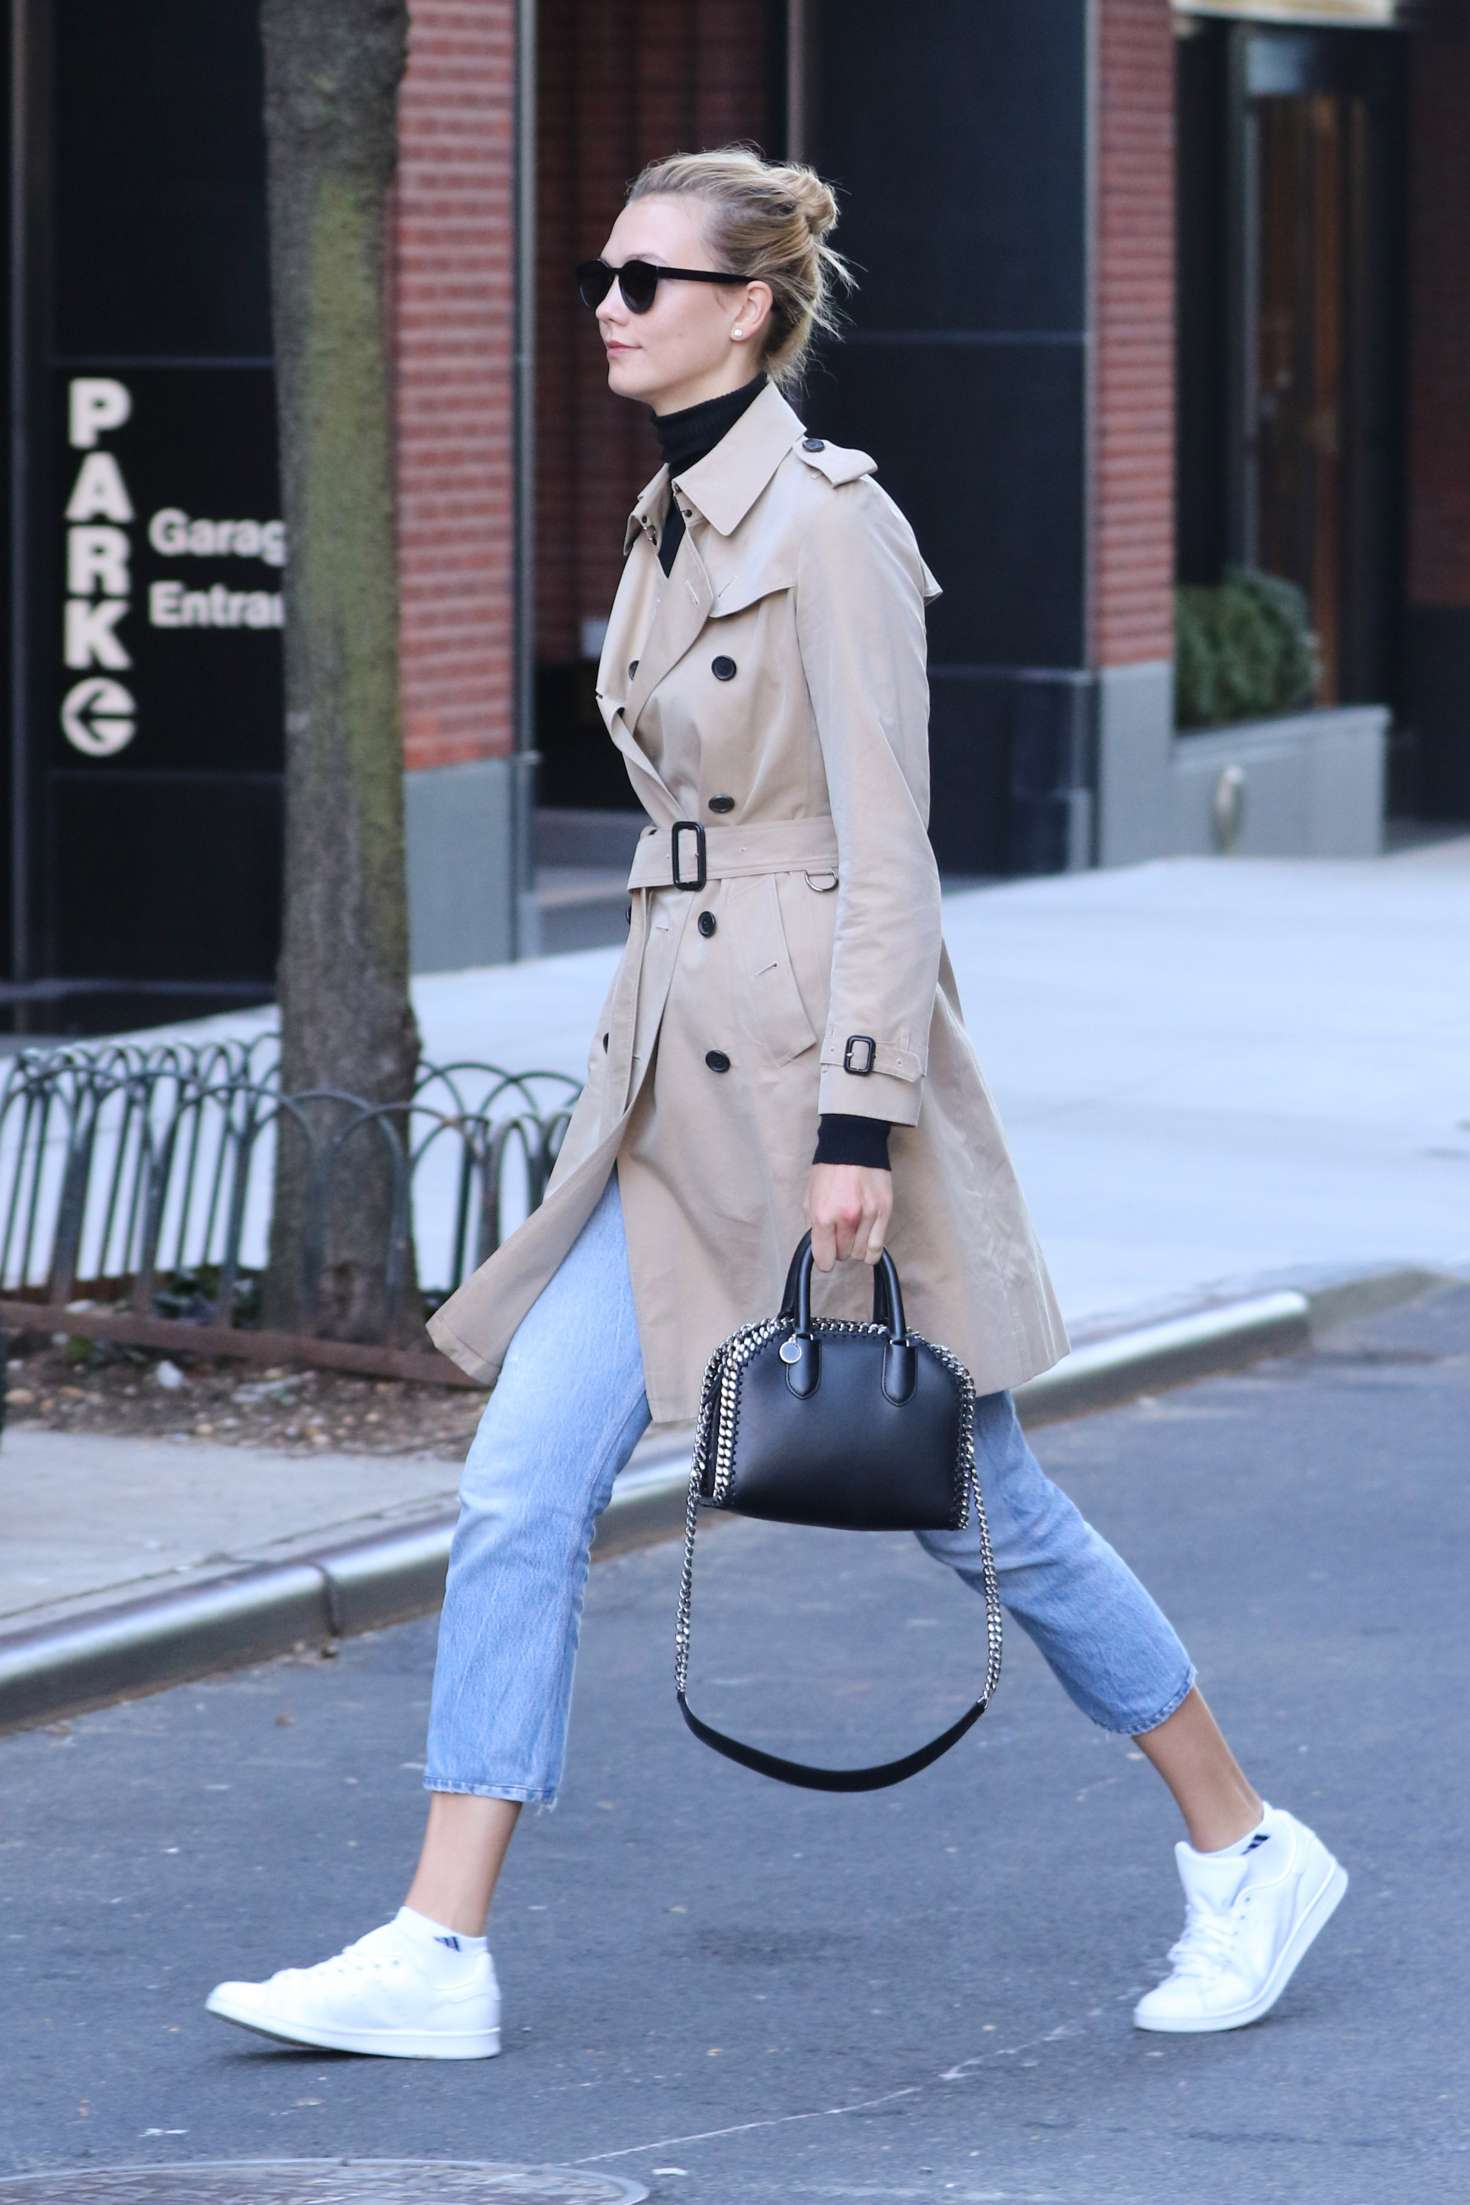 Karlie Kloss 2016 : Karlie Kloss in Jeans and Coat -02